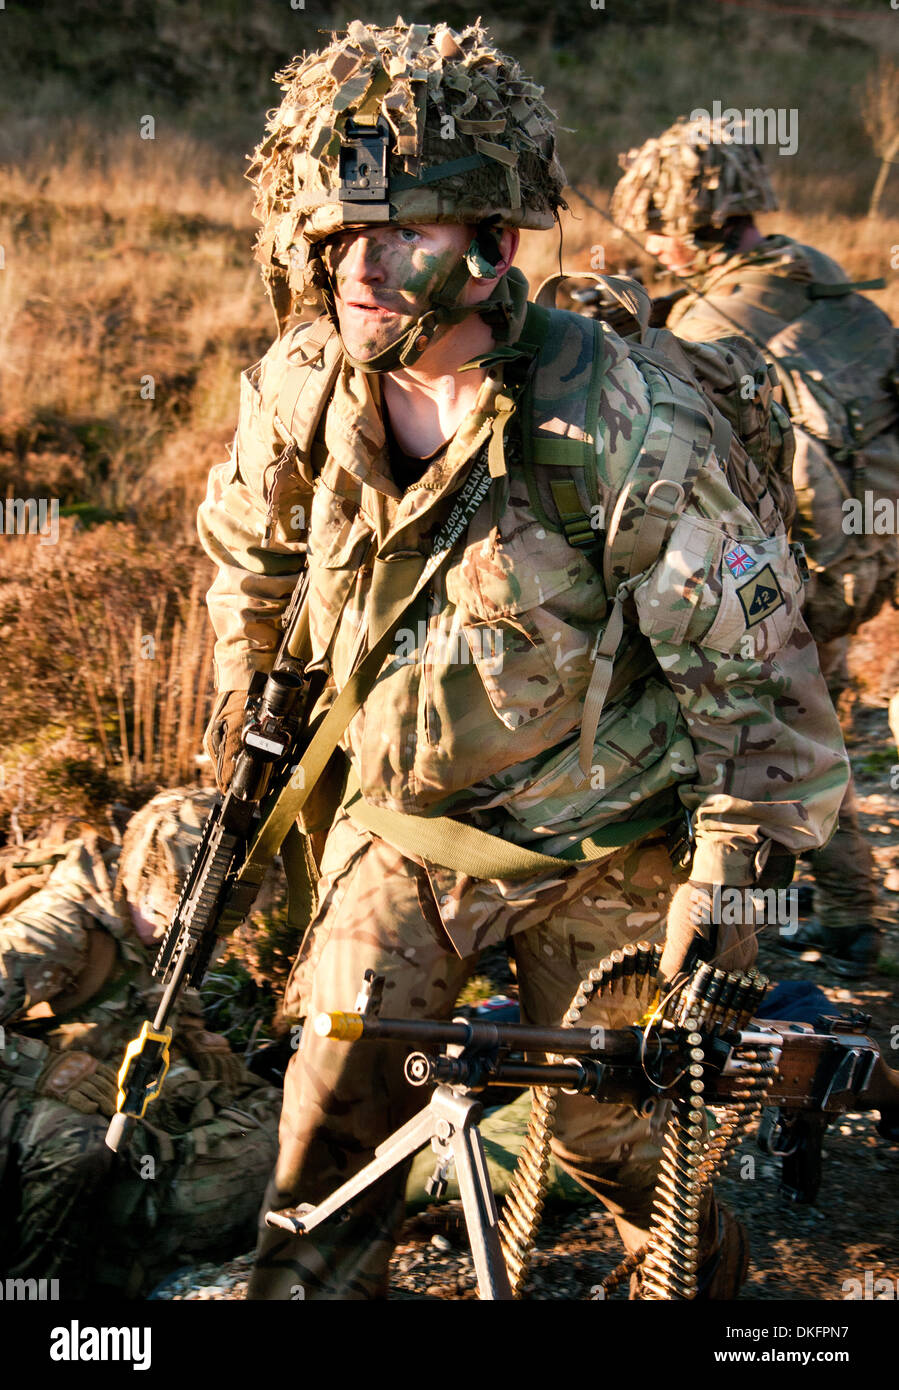 A soldier from 3 Rifles on exercise carrying his personnel weapon (SA80) as well as a GPMG both weapons fitted for firing blanks - Stock Image